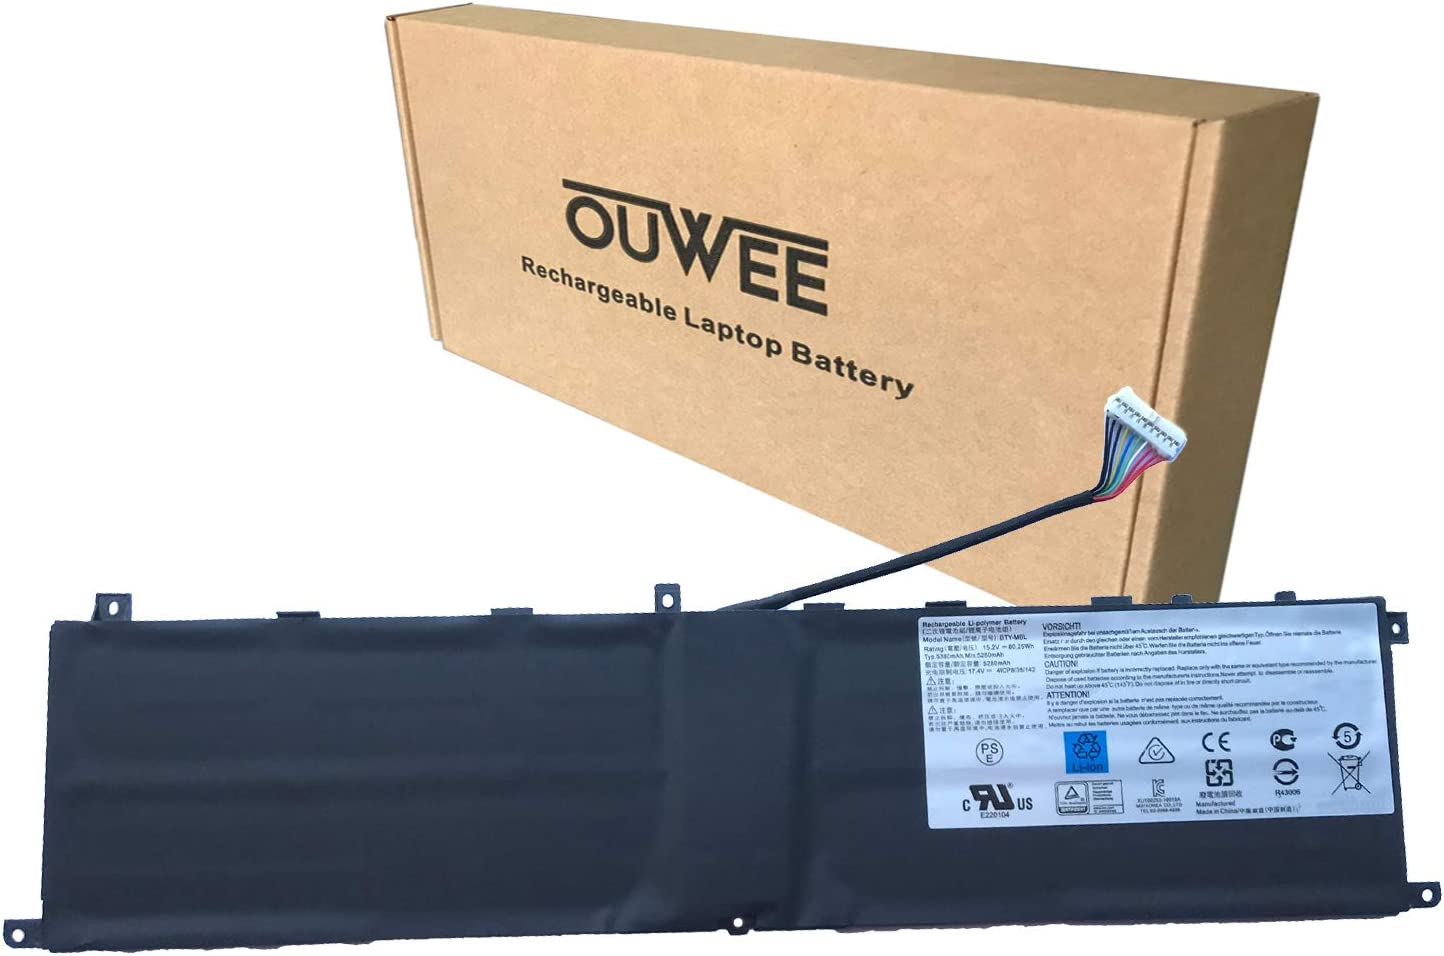 OUWEE BTY-M6L Laptop Battery Compatible with MSI GS65 GS75 Stealth Thin 8SE 8SF 8SG 9SD 9SE 9SF 9SG PS63 Modern 8RC 8SC P65 Creator 8RD 8RF 8SF 9SE P75 Creator 9SC 9SE Series MS-16Q2 15.2V 80.25Wh